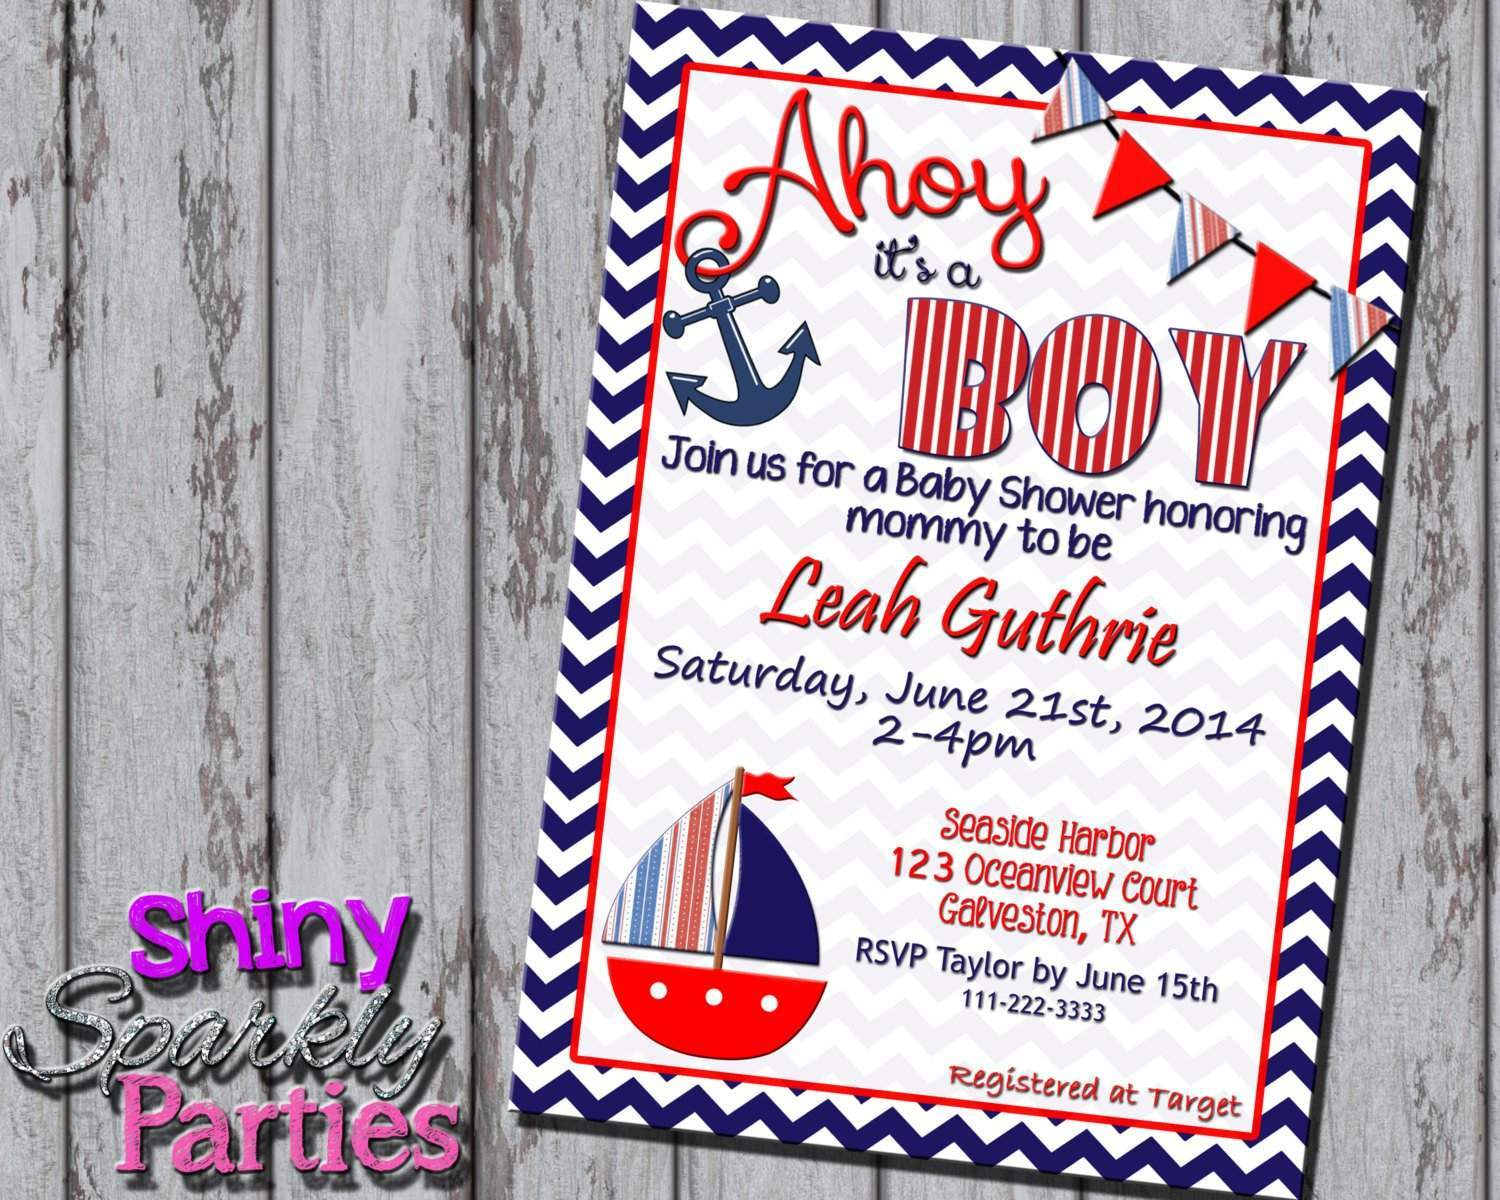 image about Nautical Baby Shower Invitations Printable named Nautical Boy or girl Shower Invitation - Sailboat Little one Shower Invitation